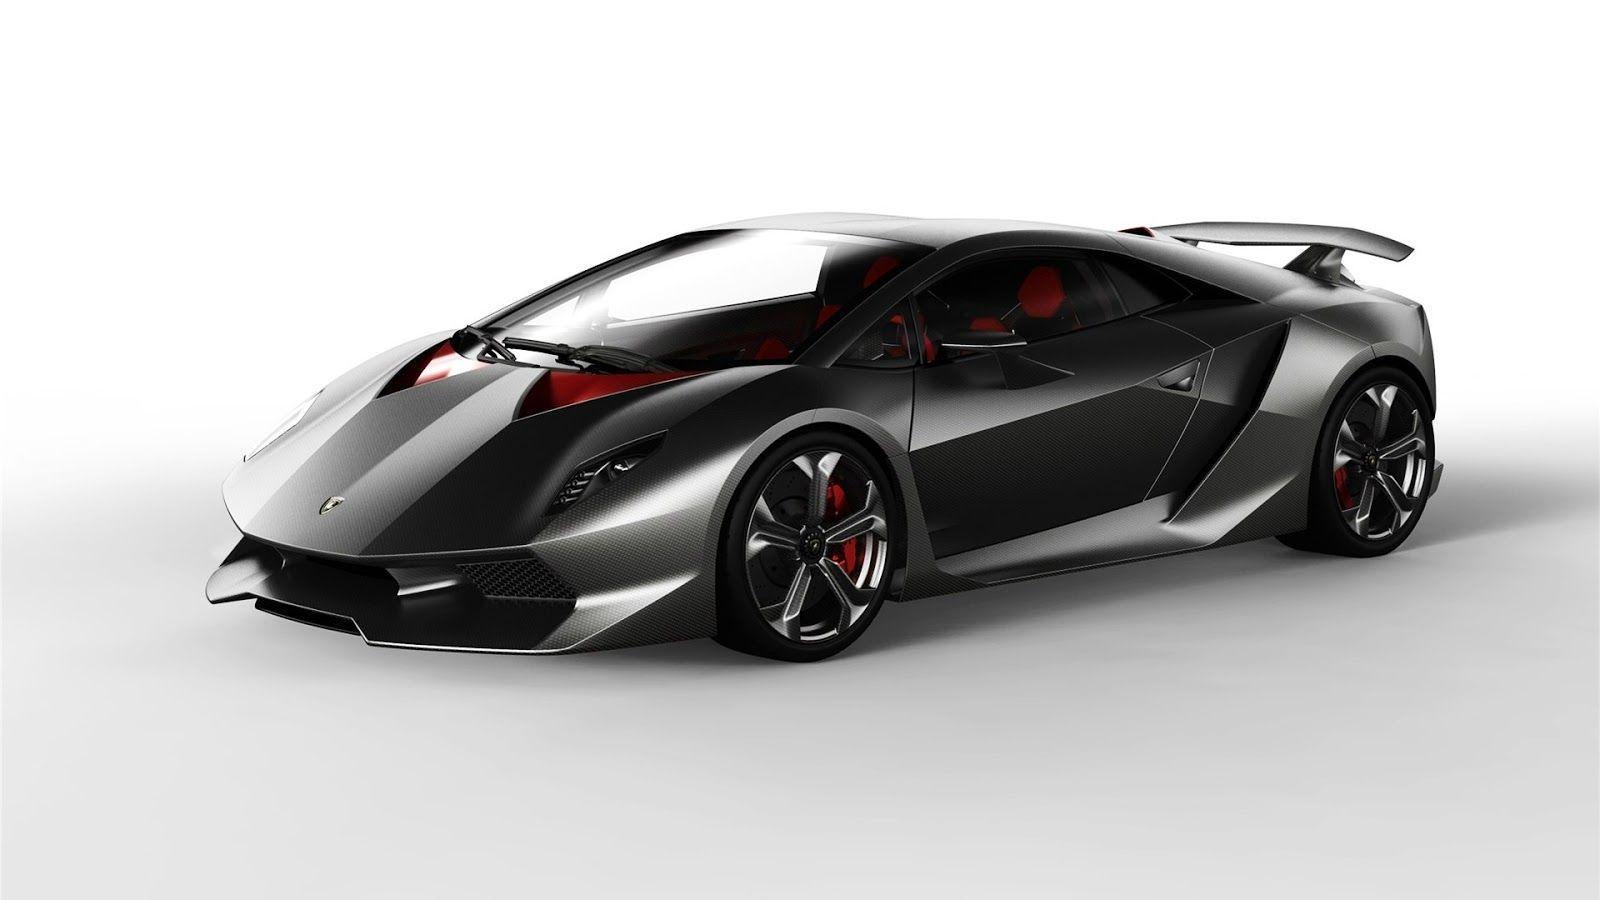 super cool cars wallpapers hd background wallpaper 27 hd - Super Cool Cars Wallpapers Hd